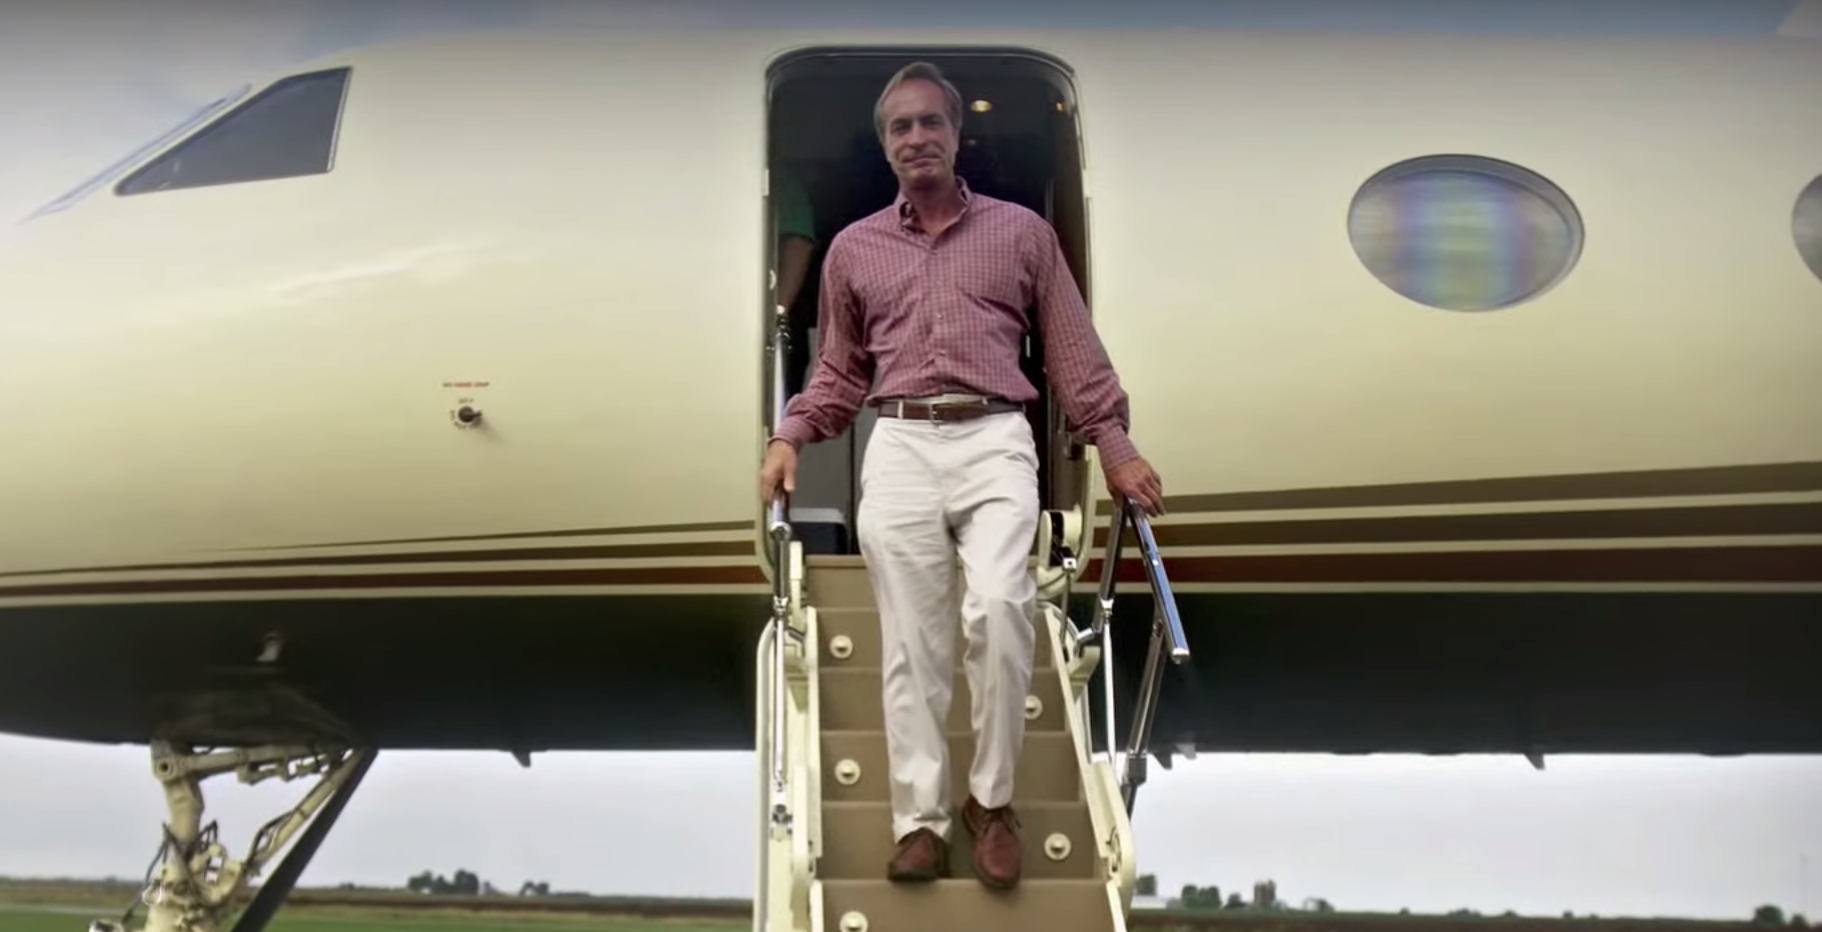 Coal billionaire Chris Cline among 7 killed in Bahamas helicopter crash. Photo from Youtube.